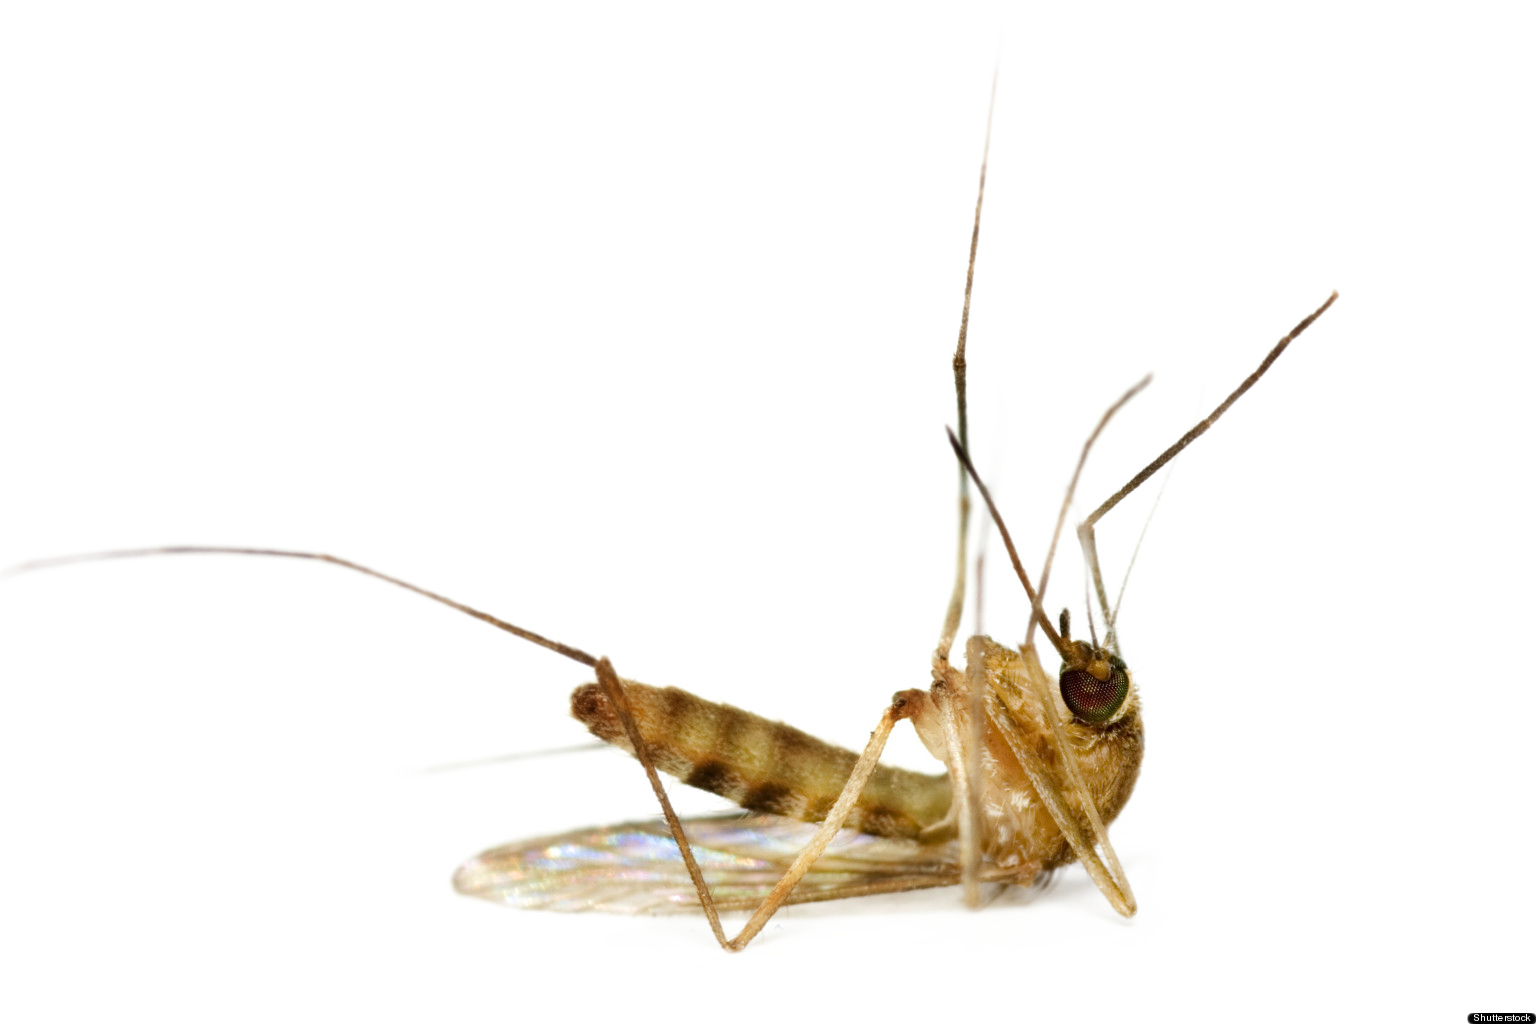 Vector parasite arthropod. Mosquito png images free